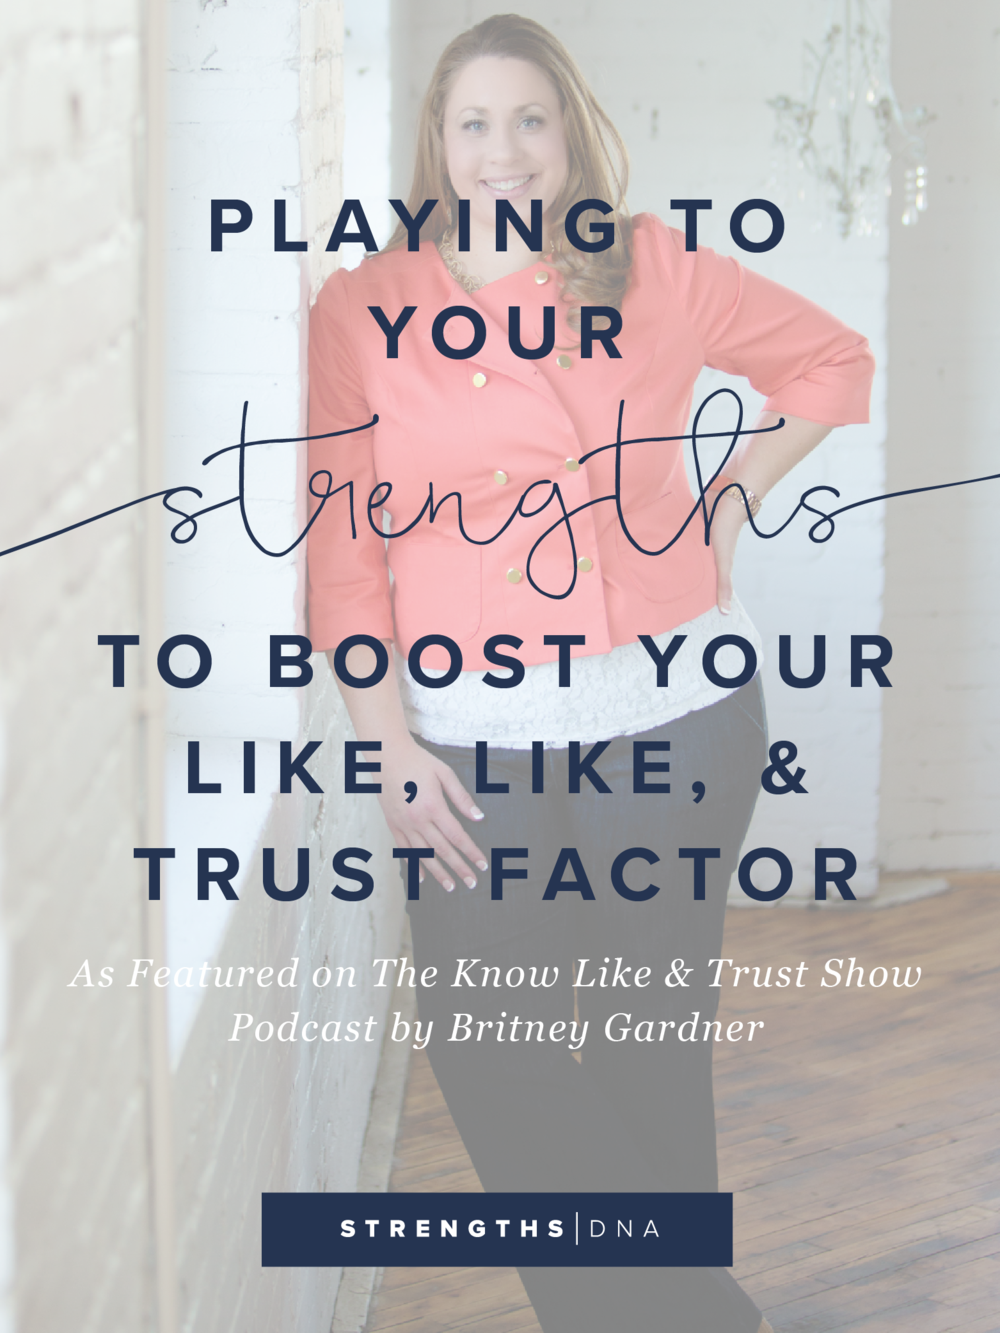 Playing to Your Strengths to Boost Your Know Like & Trust Factor